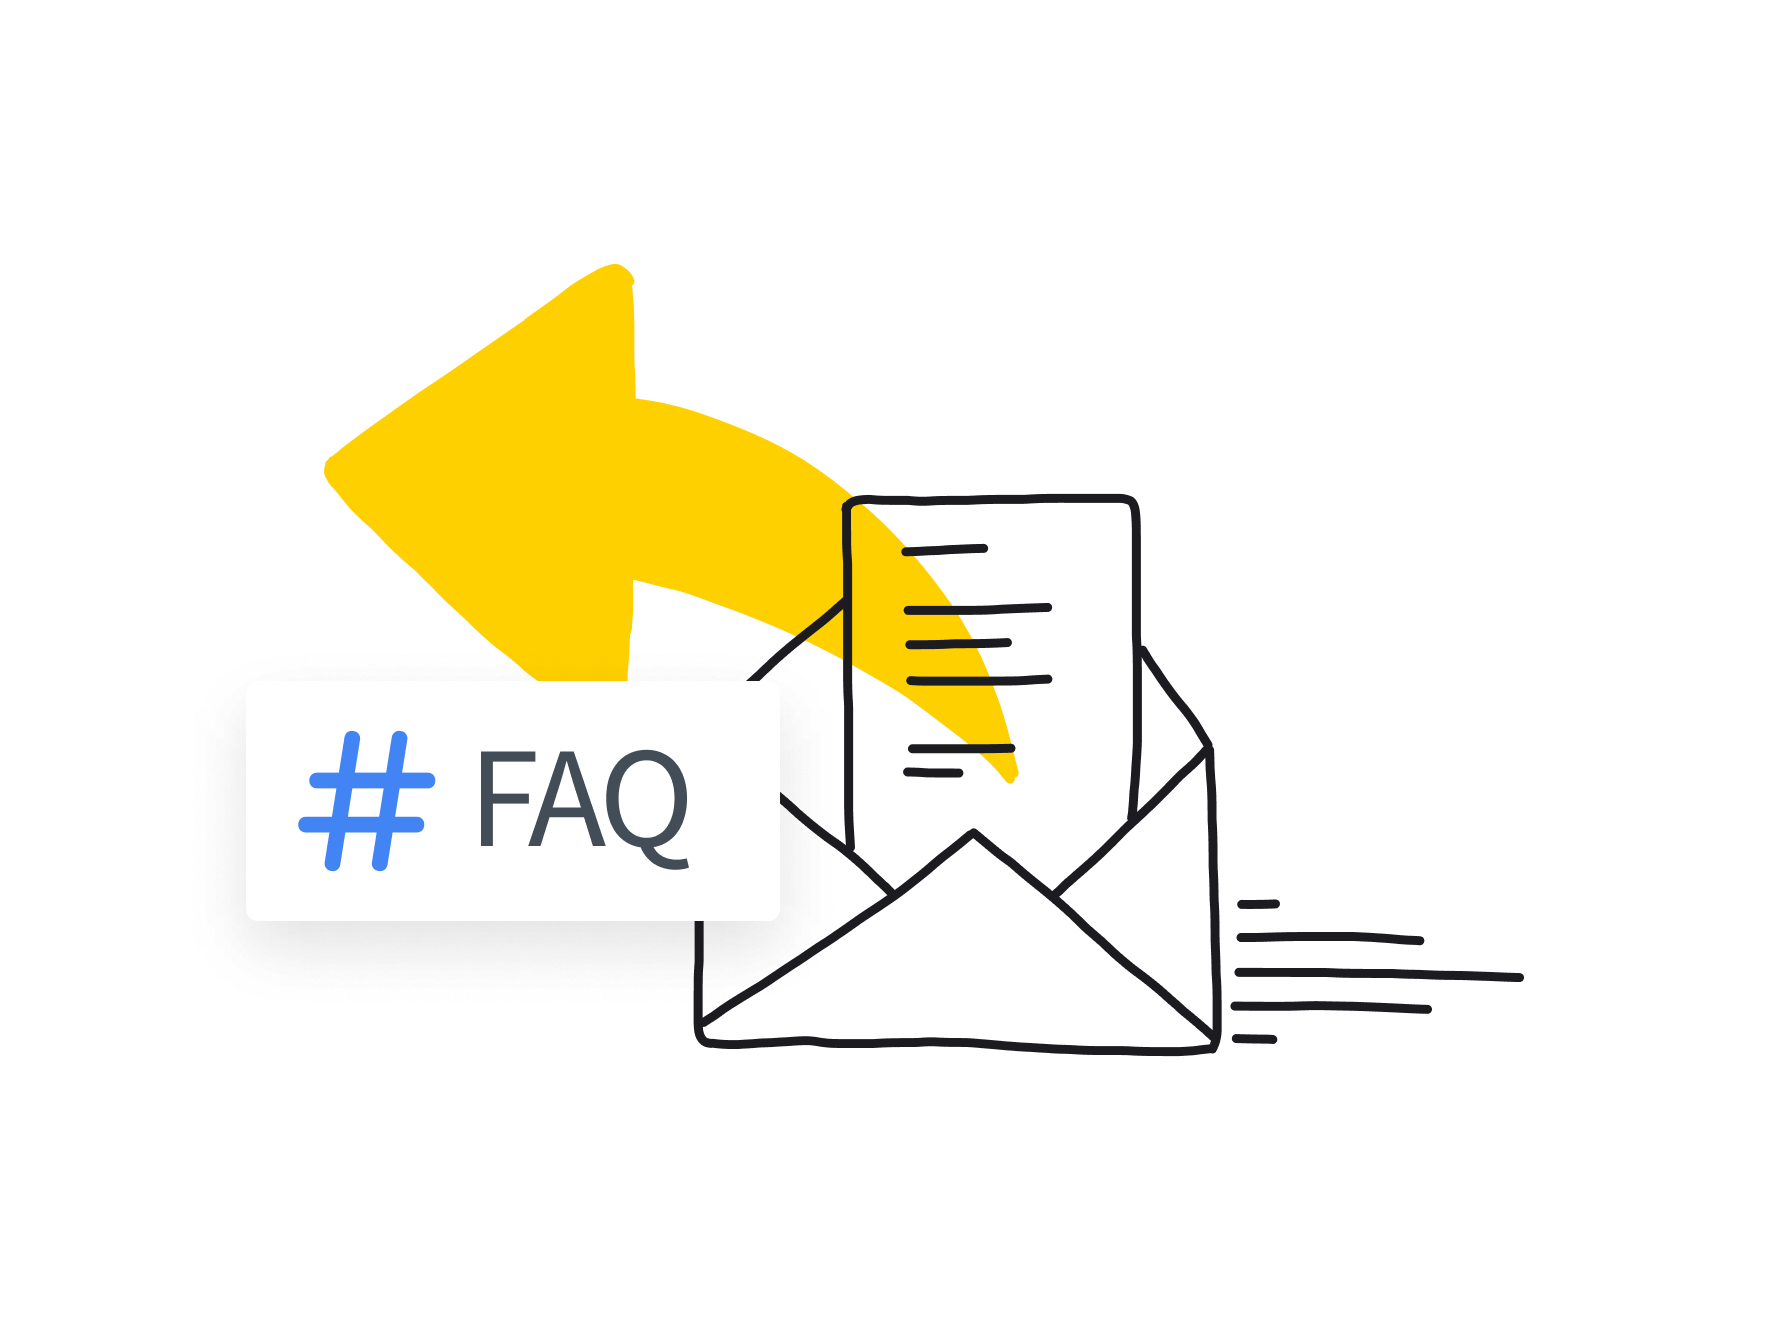 Illustration: Open envelope with a letter, an arrow going outwards, and a hash with FAQ